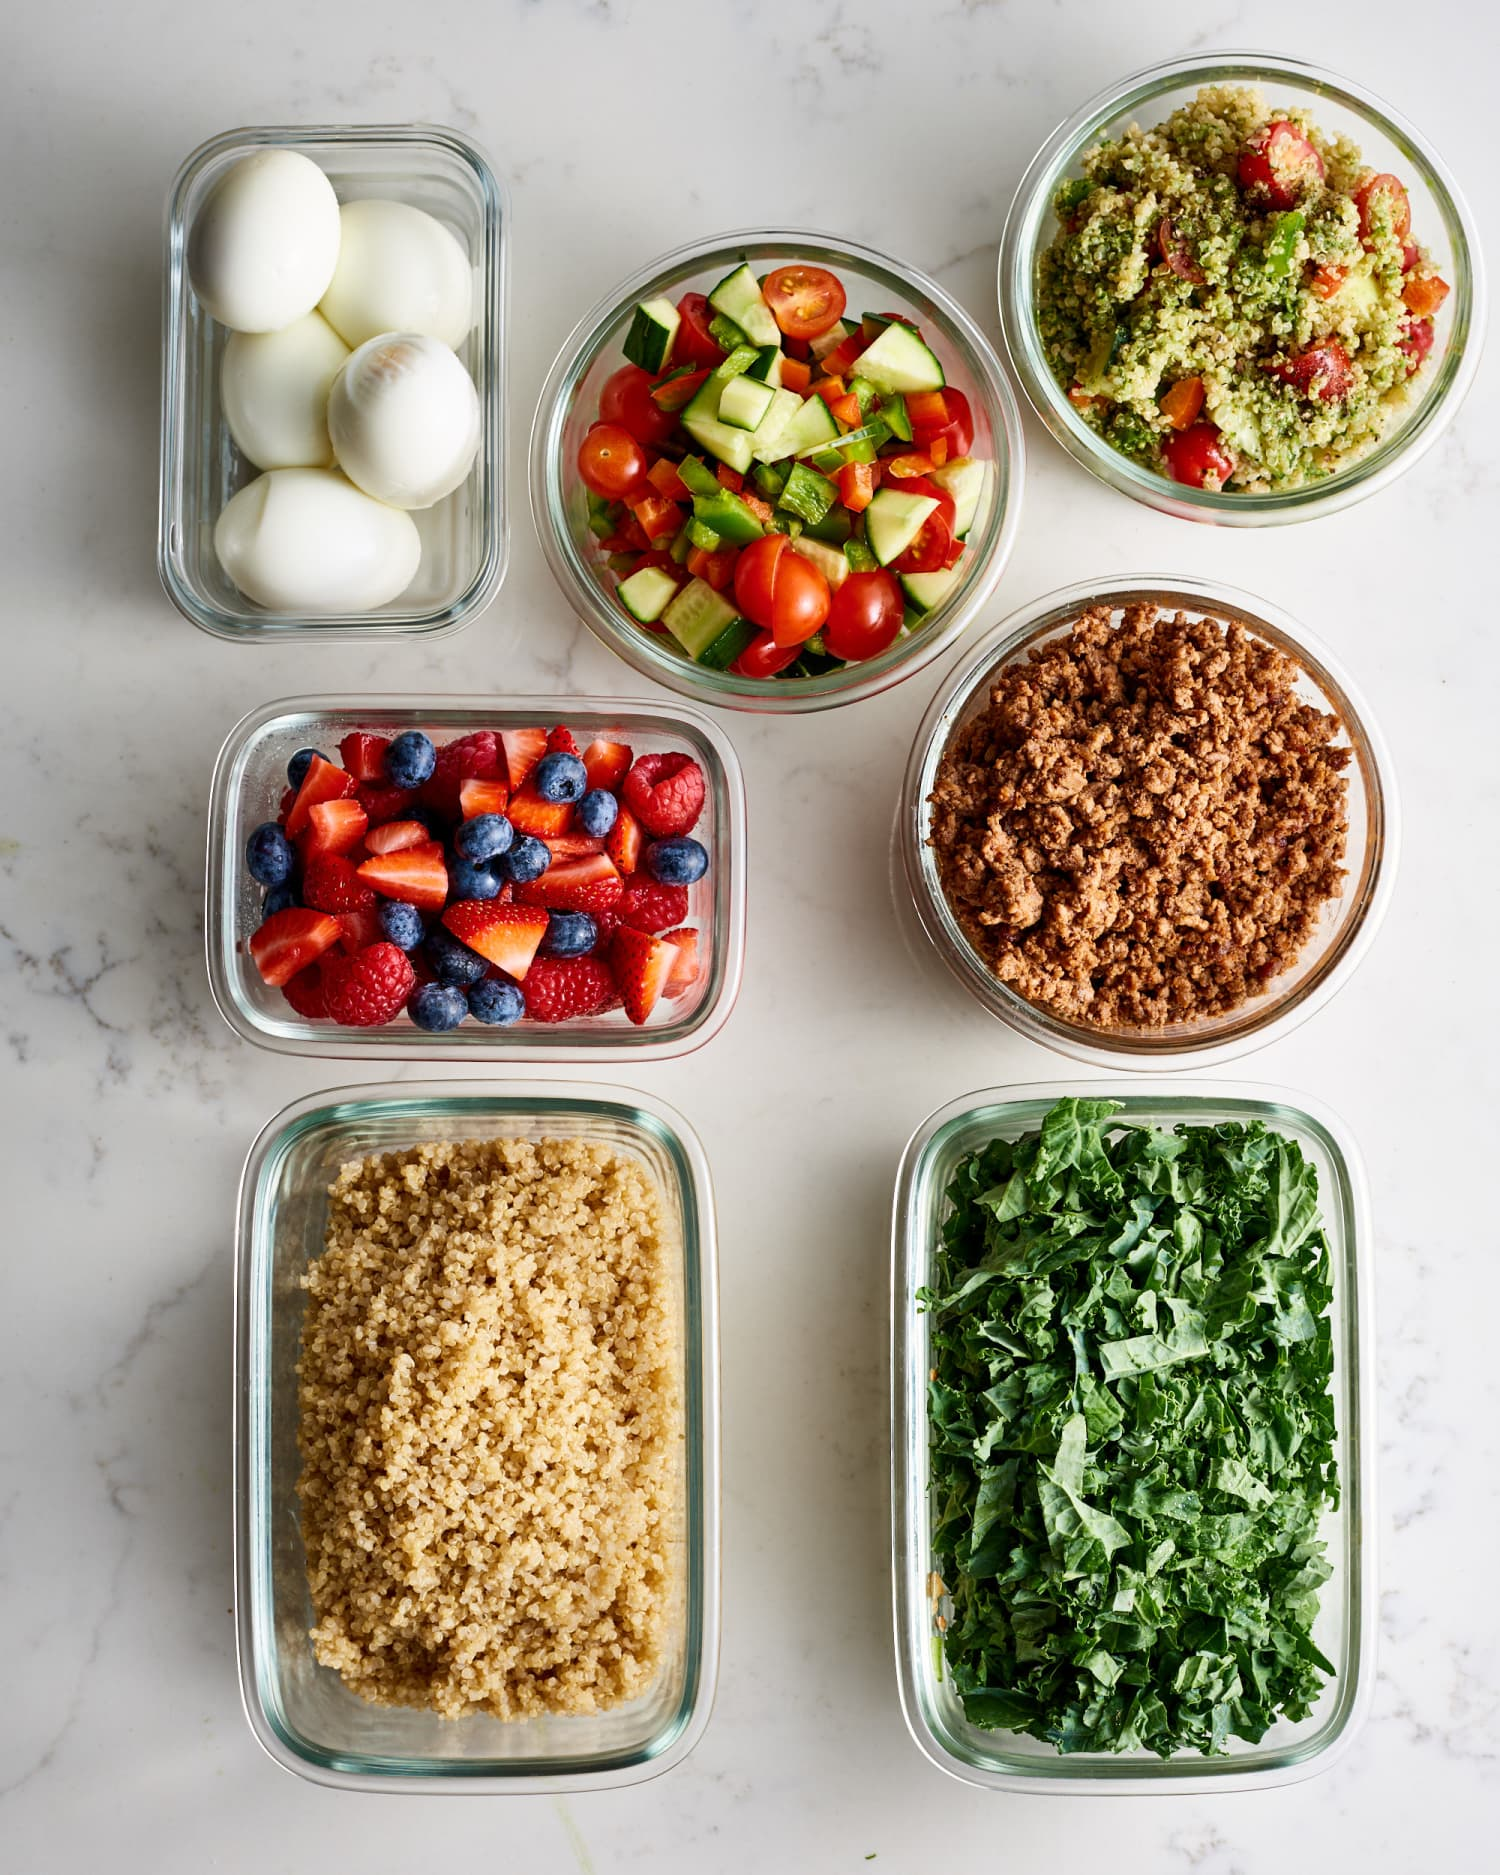 Meal Prep Plan: How I Prep a Week of Easy Mediterranean Diet Meals in Just 2 Hours